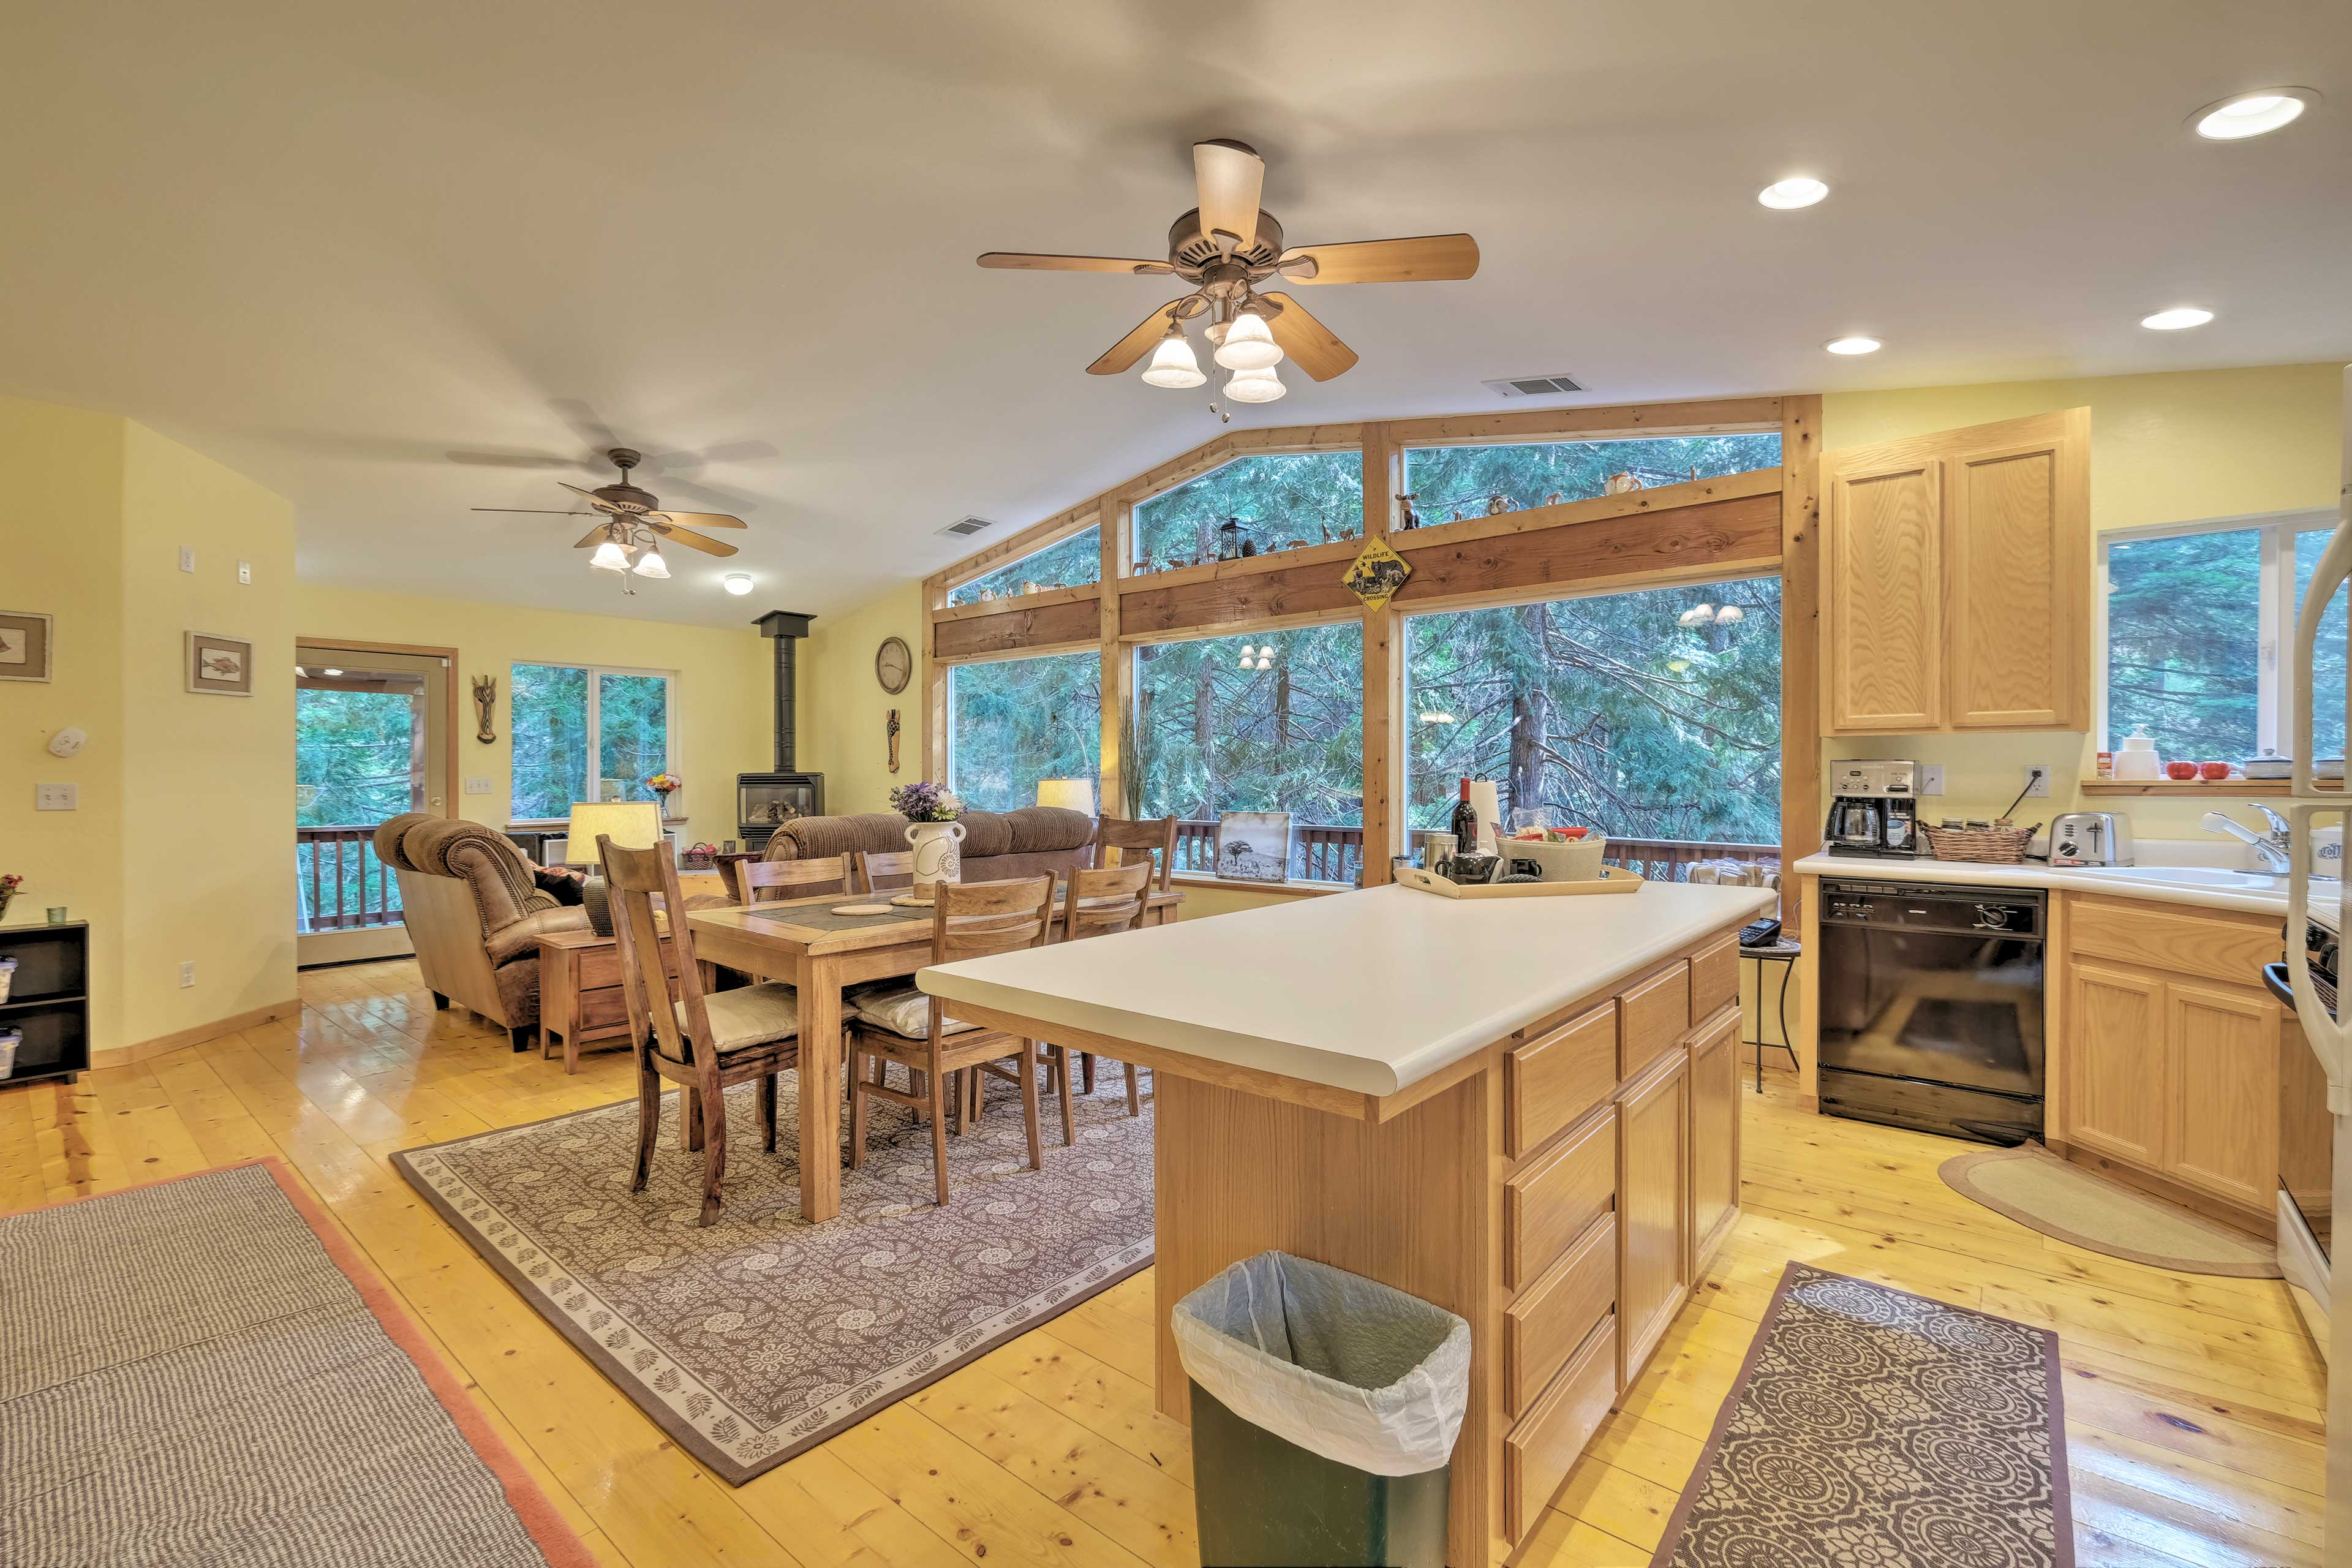 Prepare homemade meals at the kitchen's island countertop.